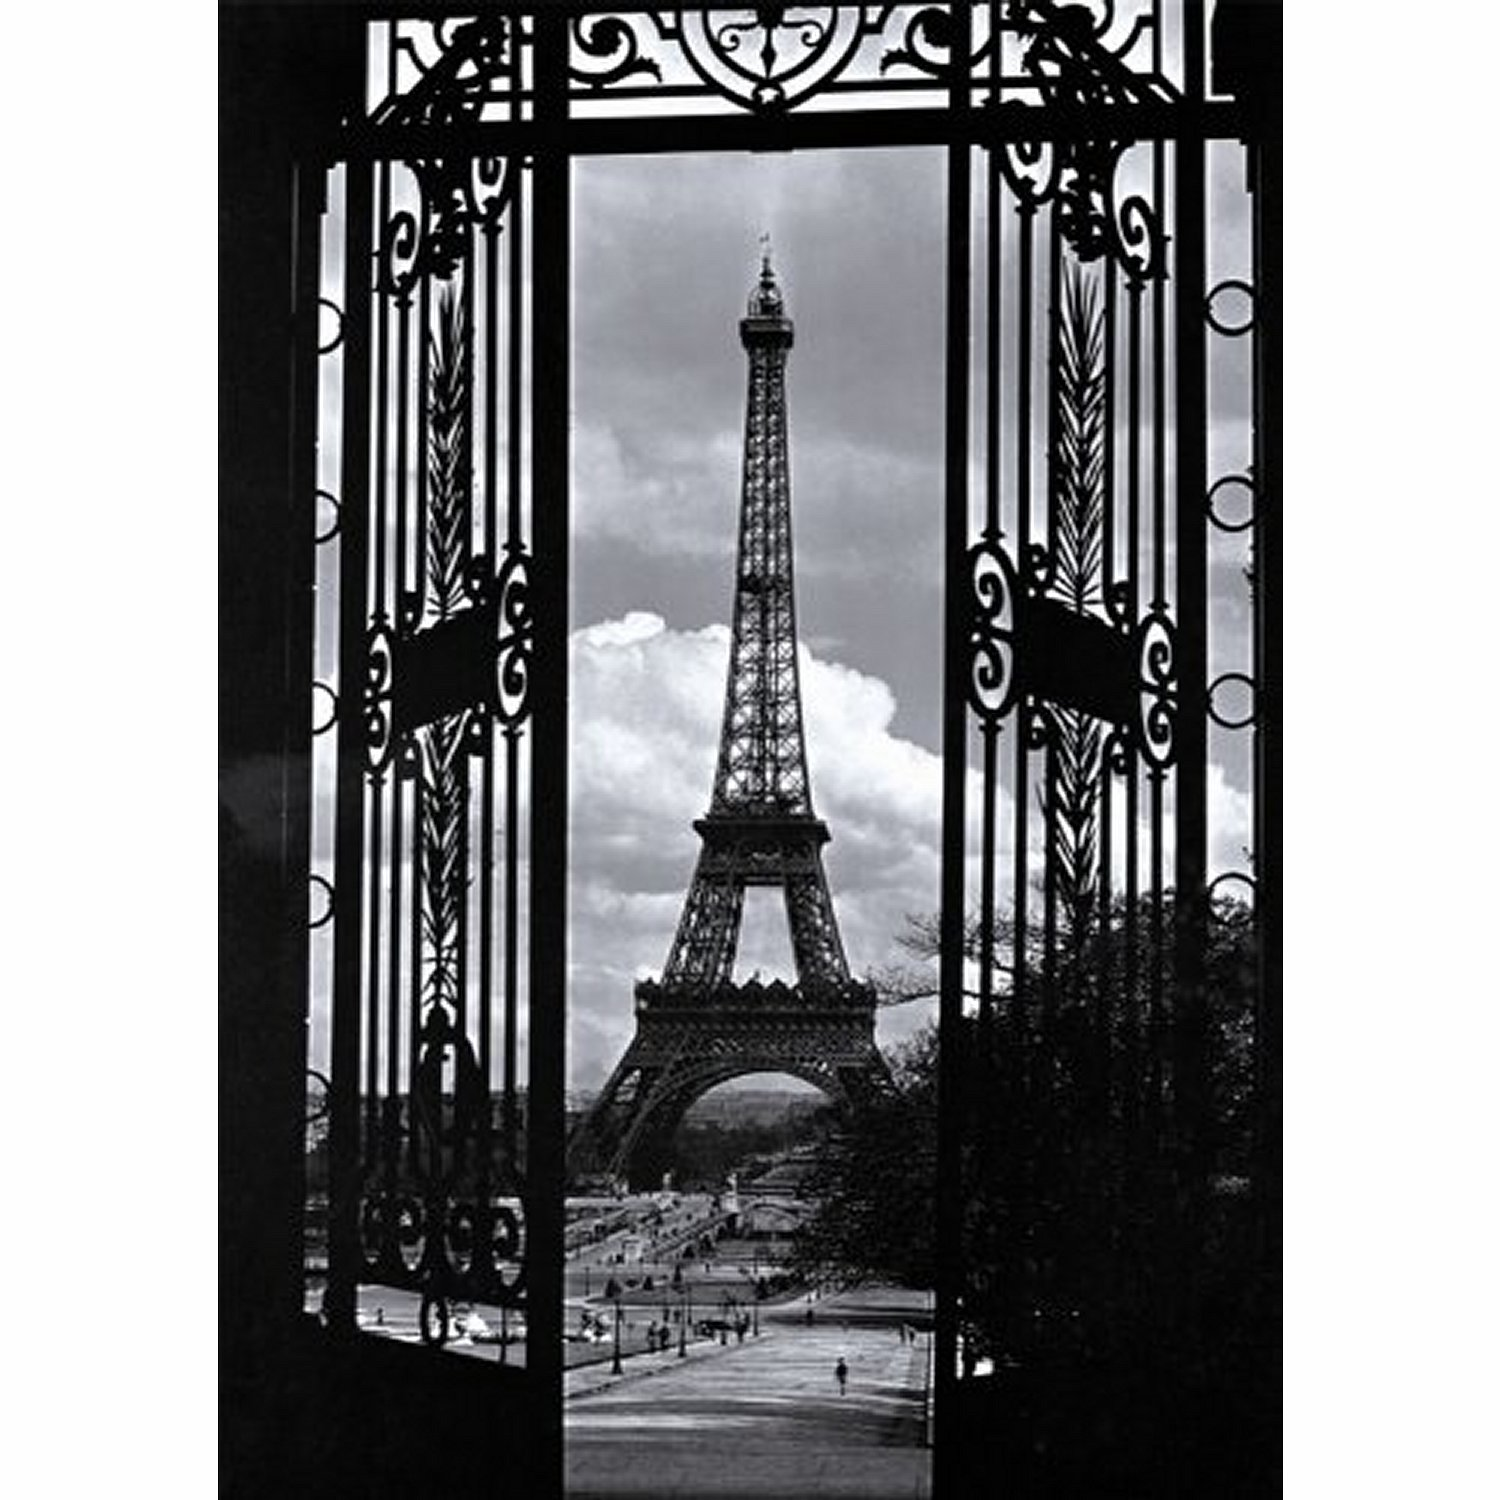 puzzle tour eiffel nostalgique nathan 87570 1000 pi ces puzzles villes et villages planet. Black Bedroom Furniture Sets. Home Design Ideas